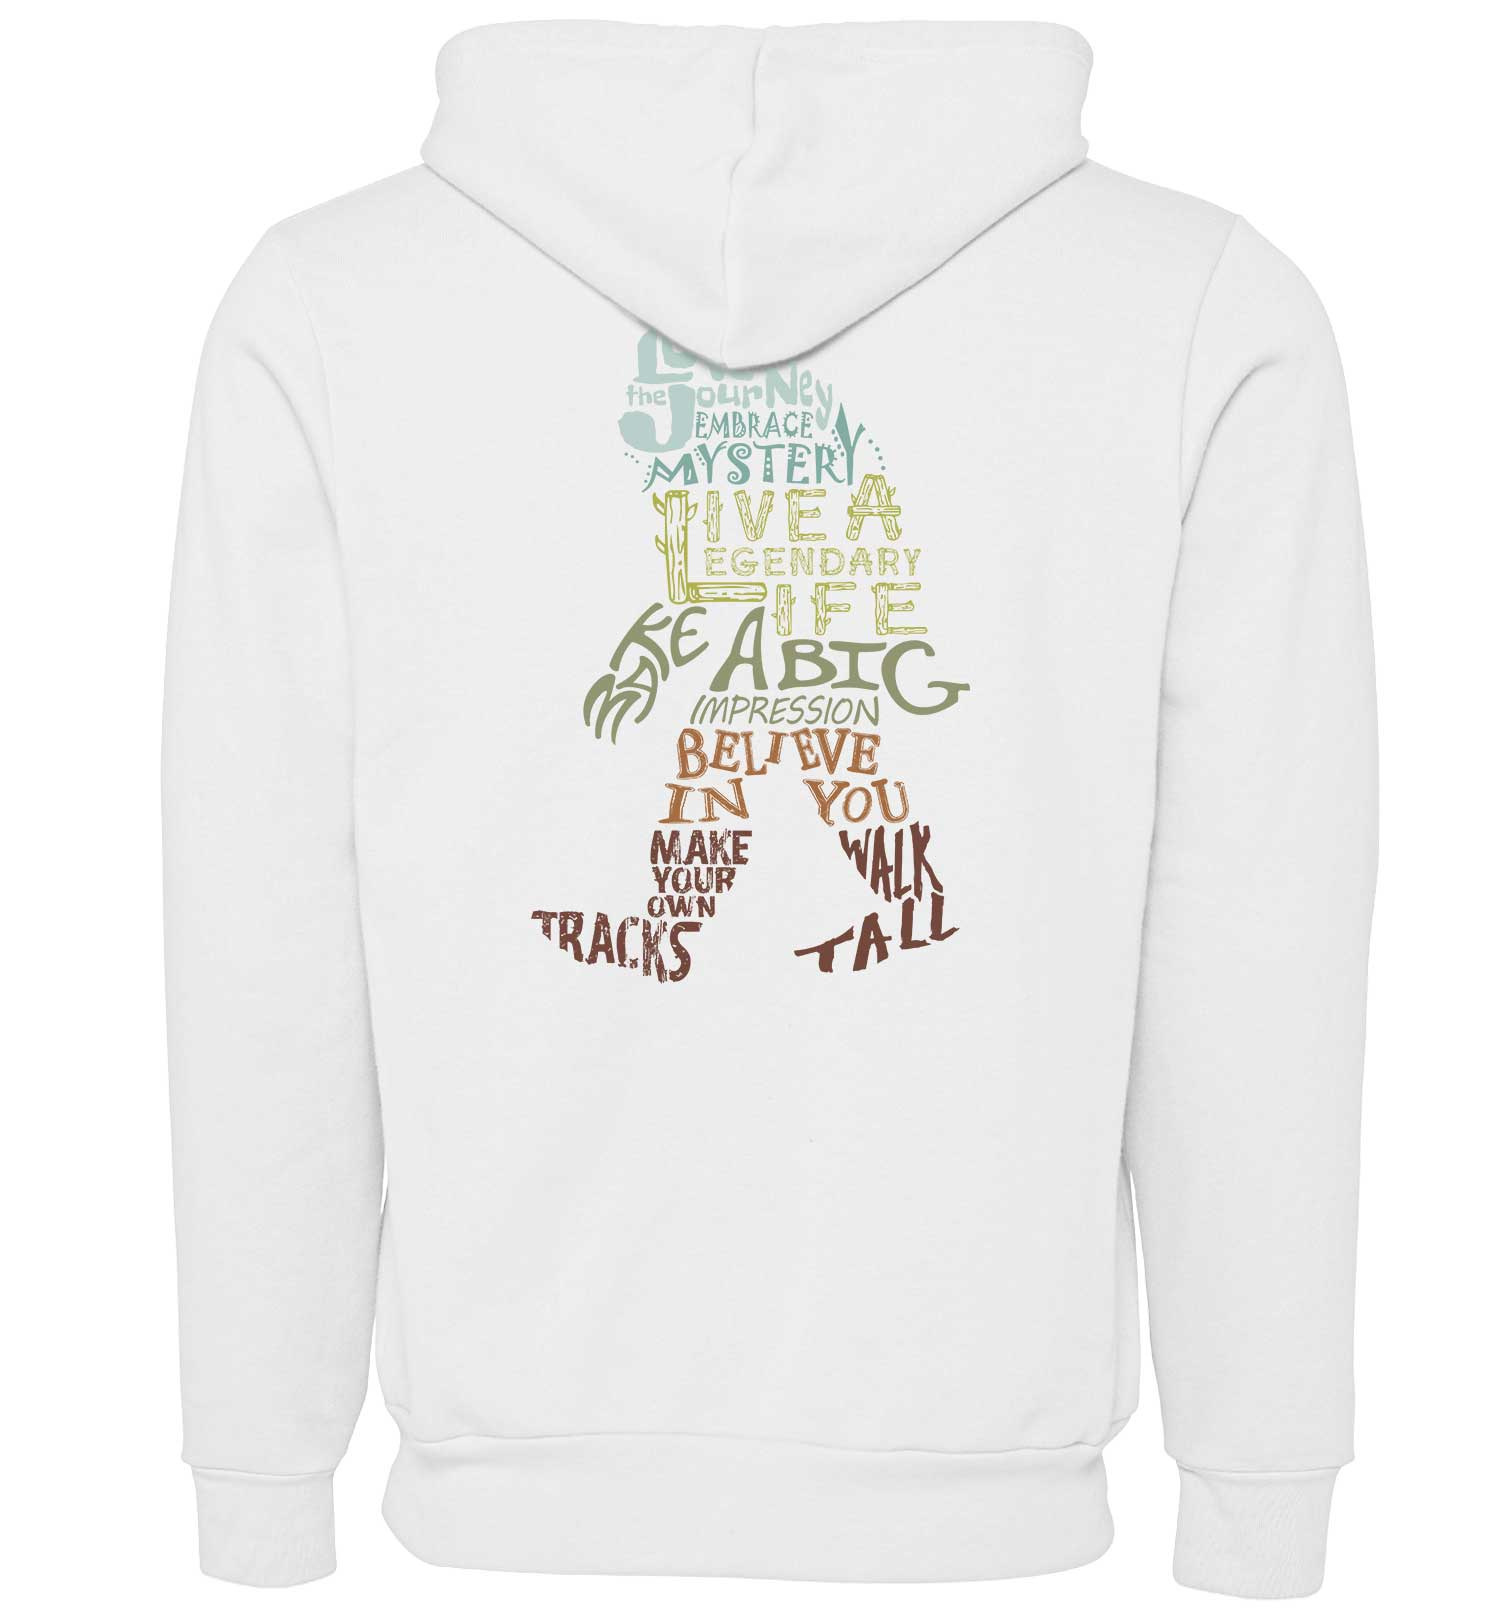 Bigfoot Wisdom - Sweatshirt - Zip Hoodie - White - Back - PNW Journey